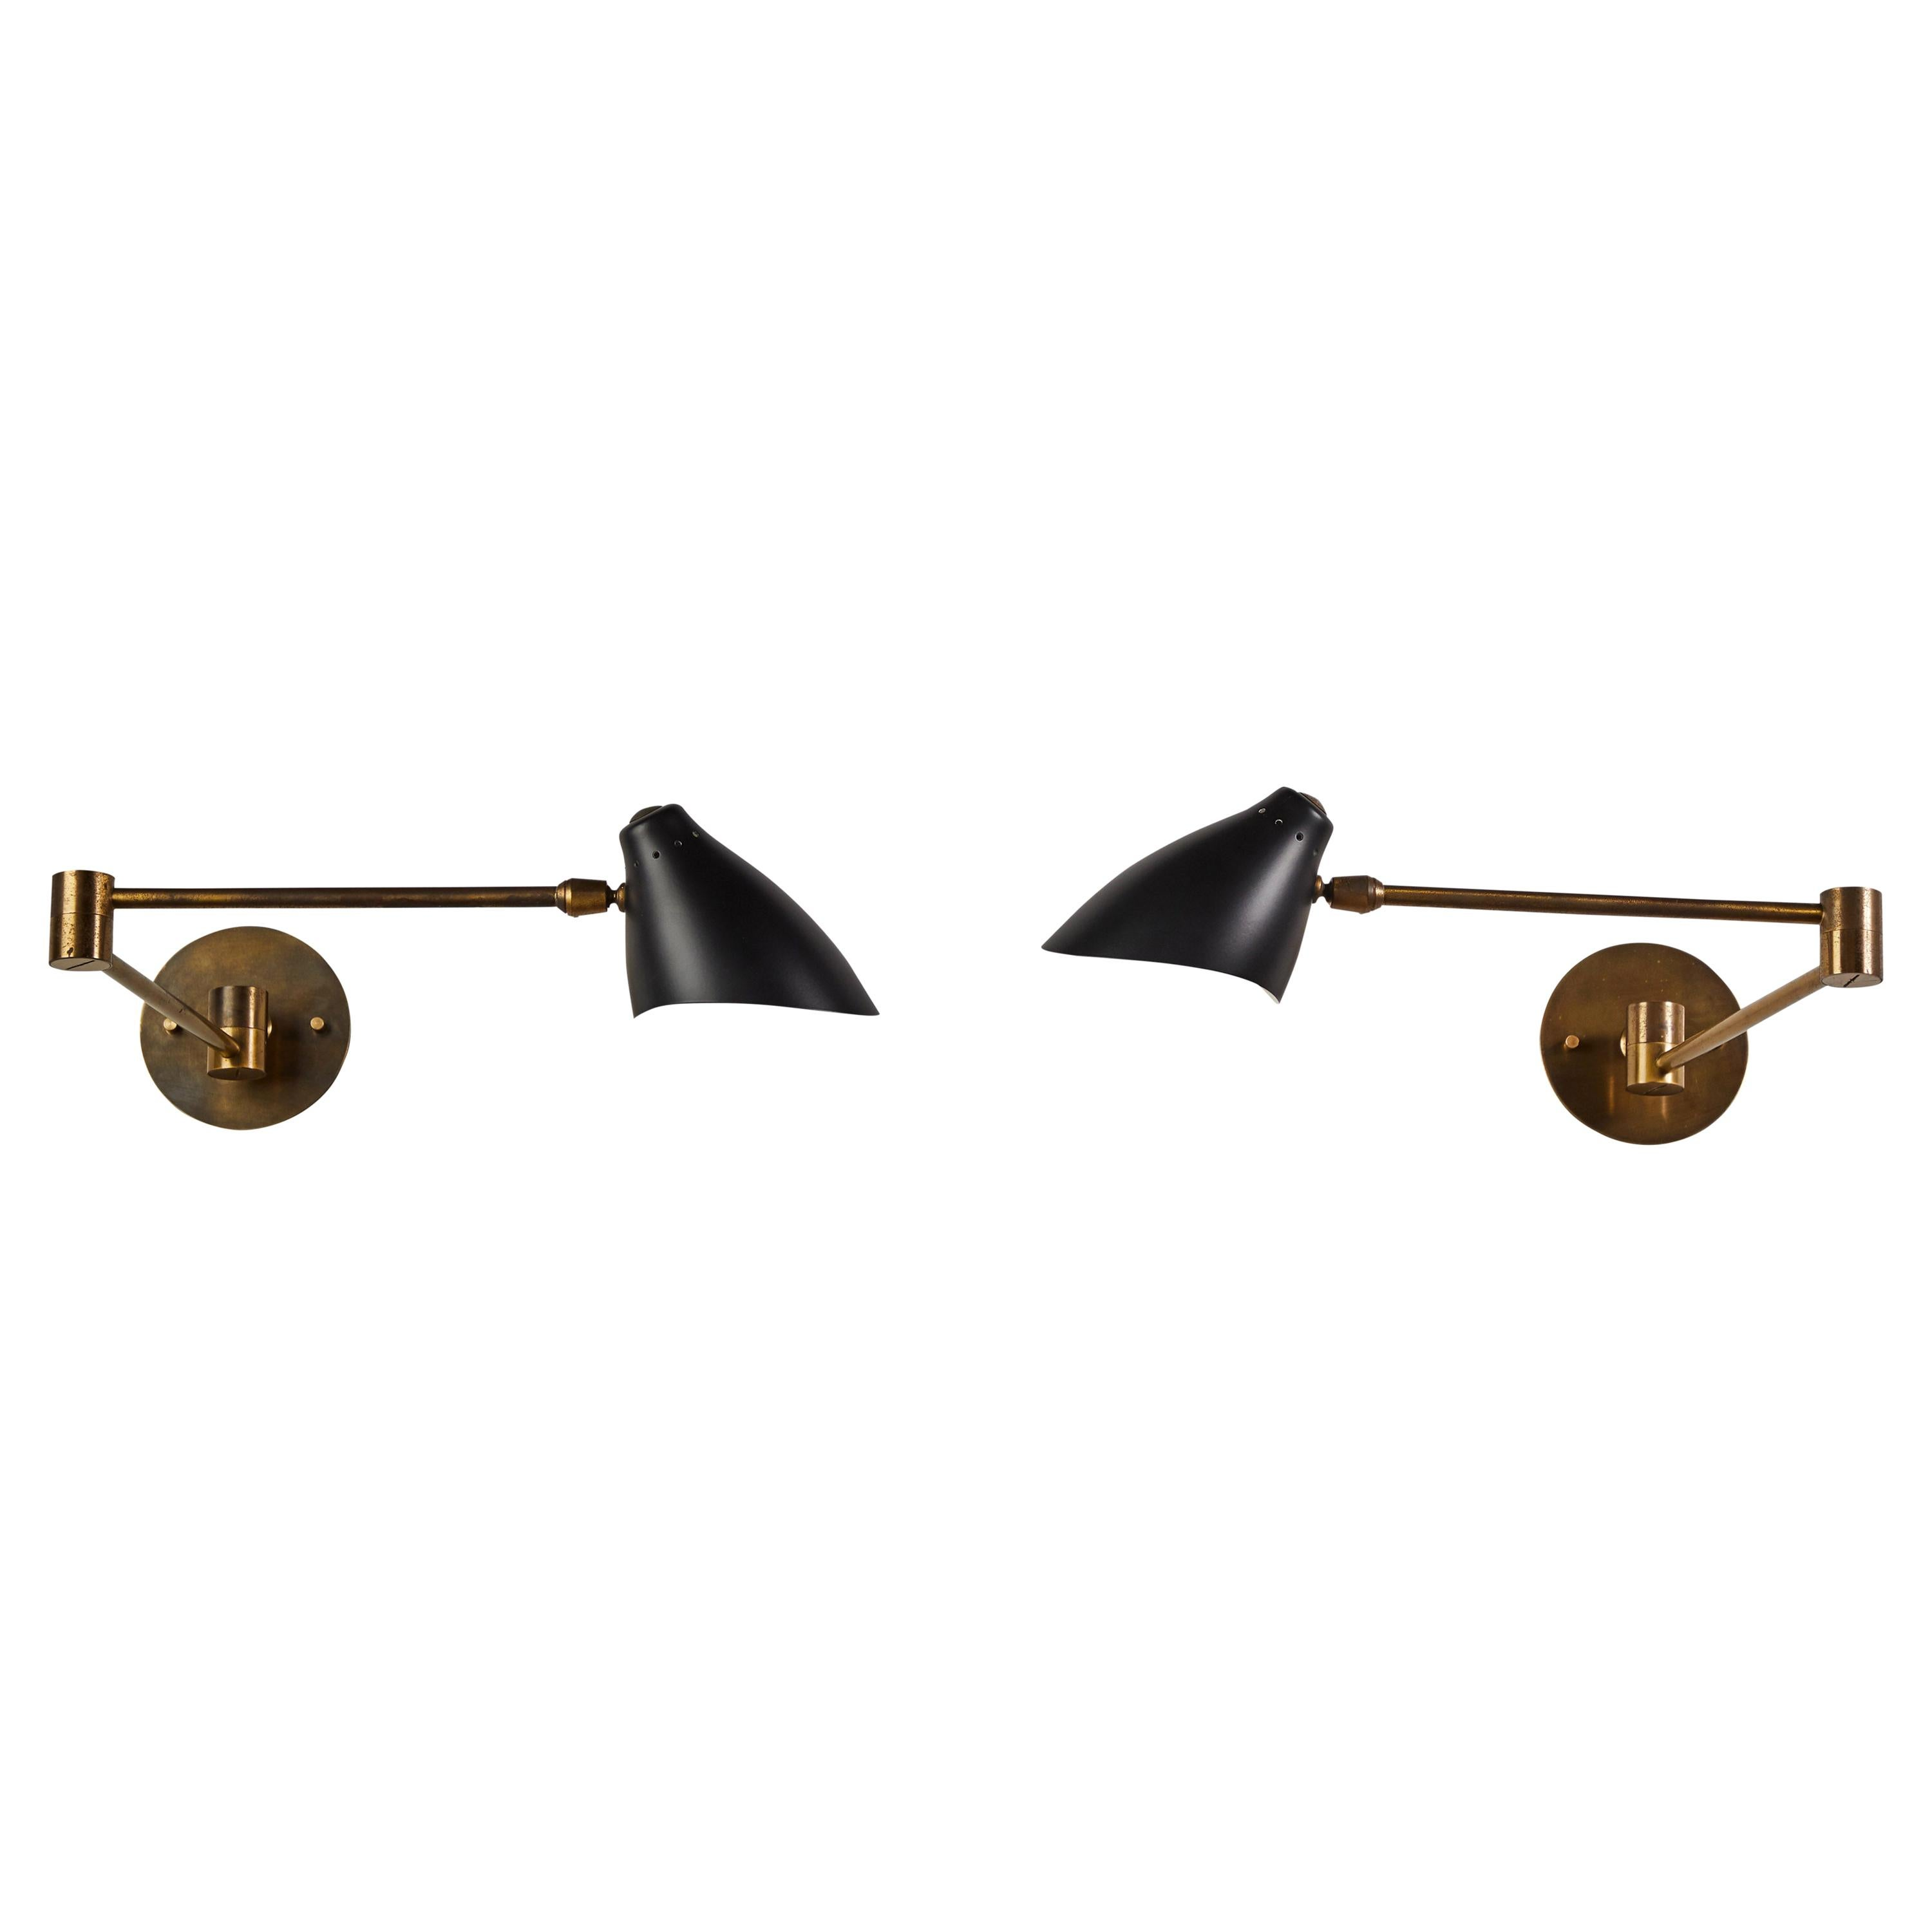 Pair of Sconces by Angelo Lelli for Arredoluce